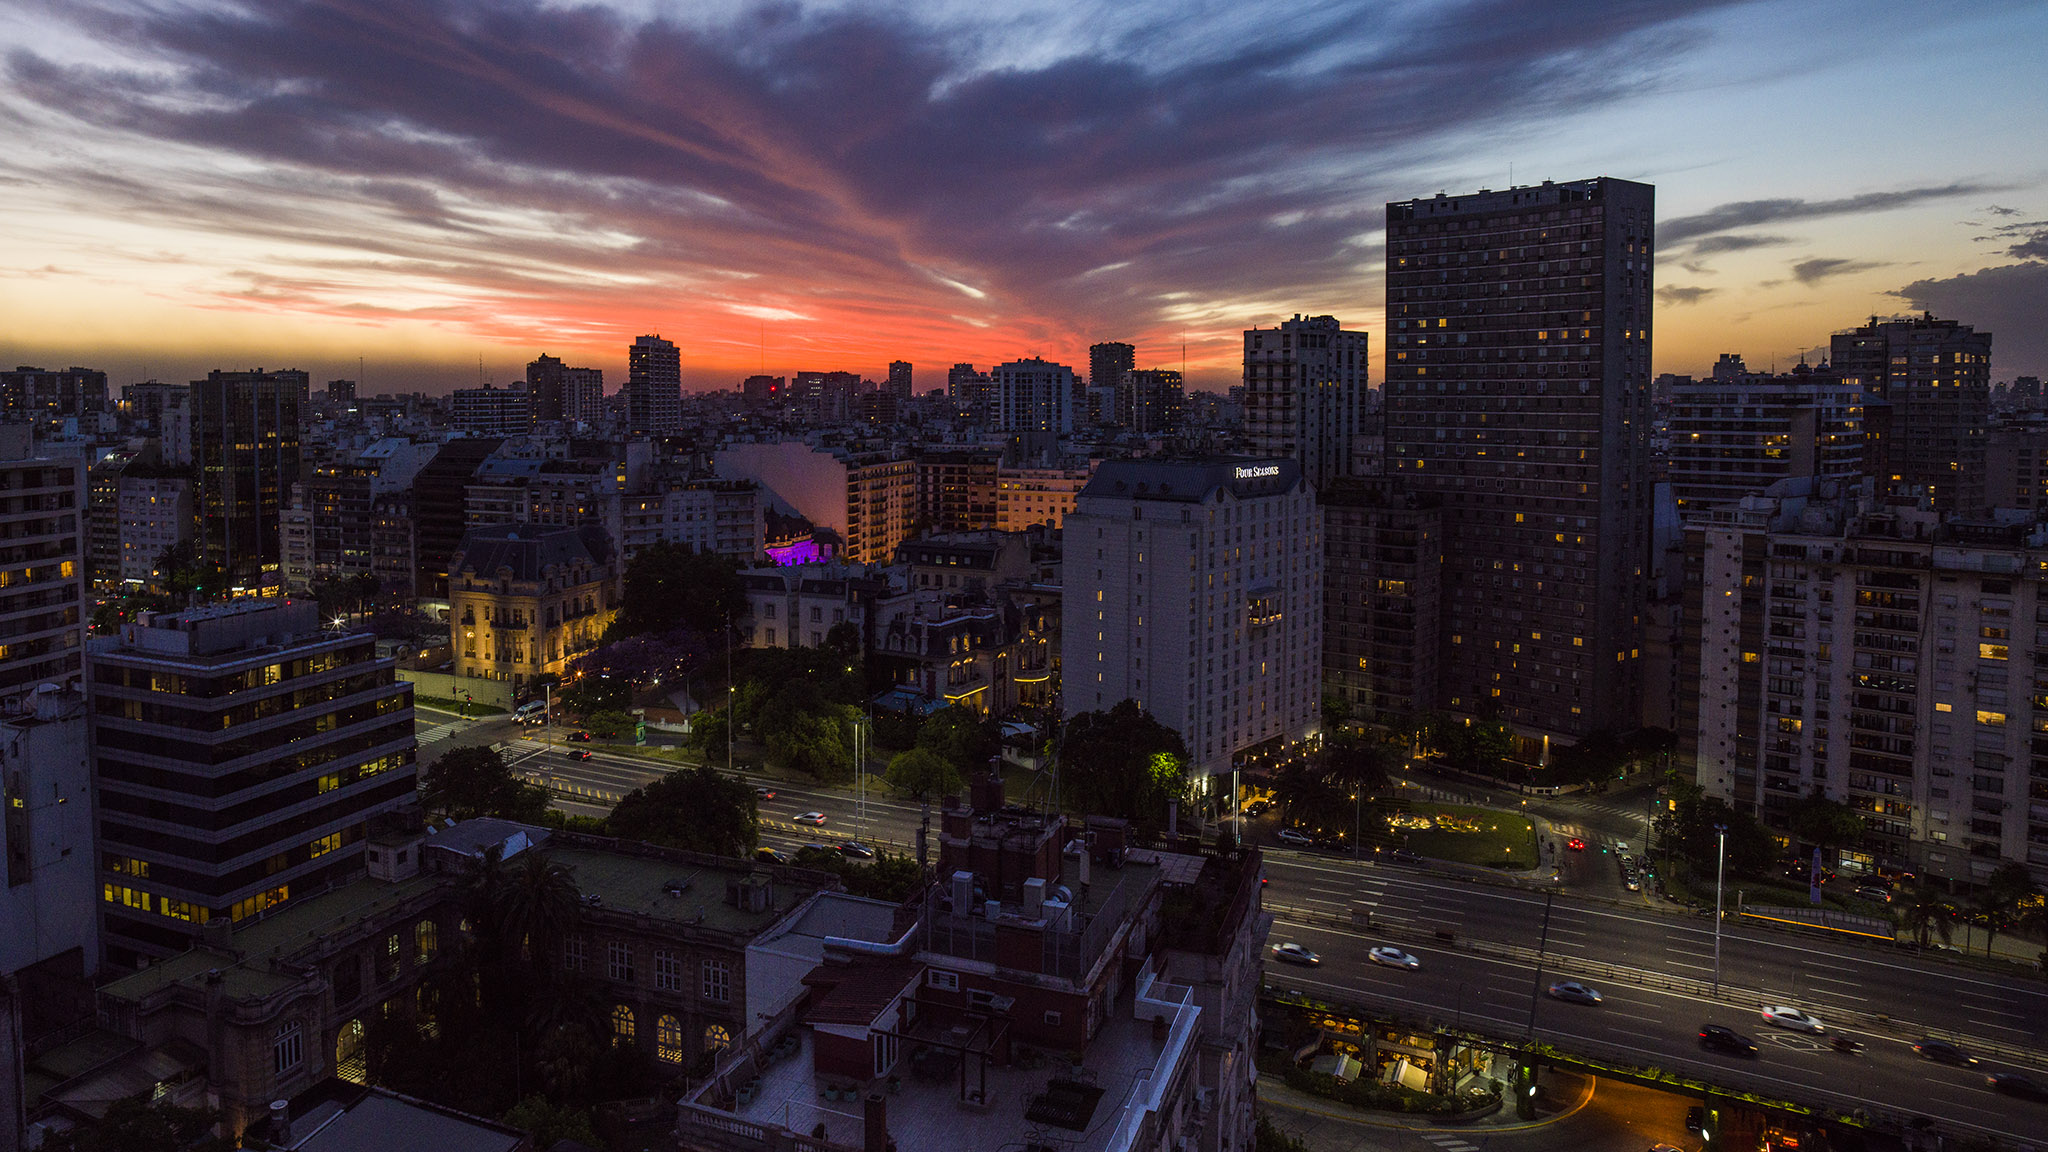 Rooftop view in Buenos Aires.H6D-100C w/ 24mm (handheld).